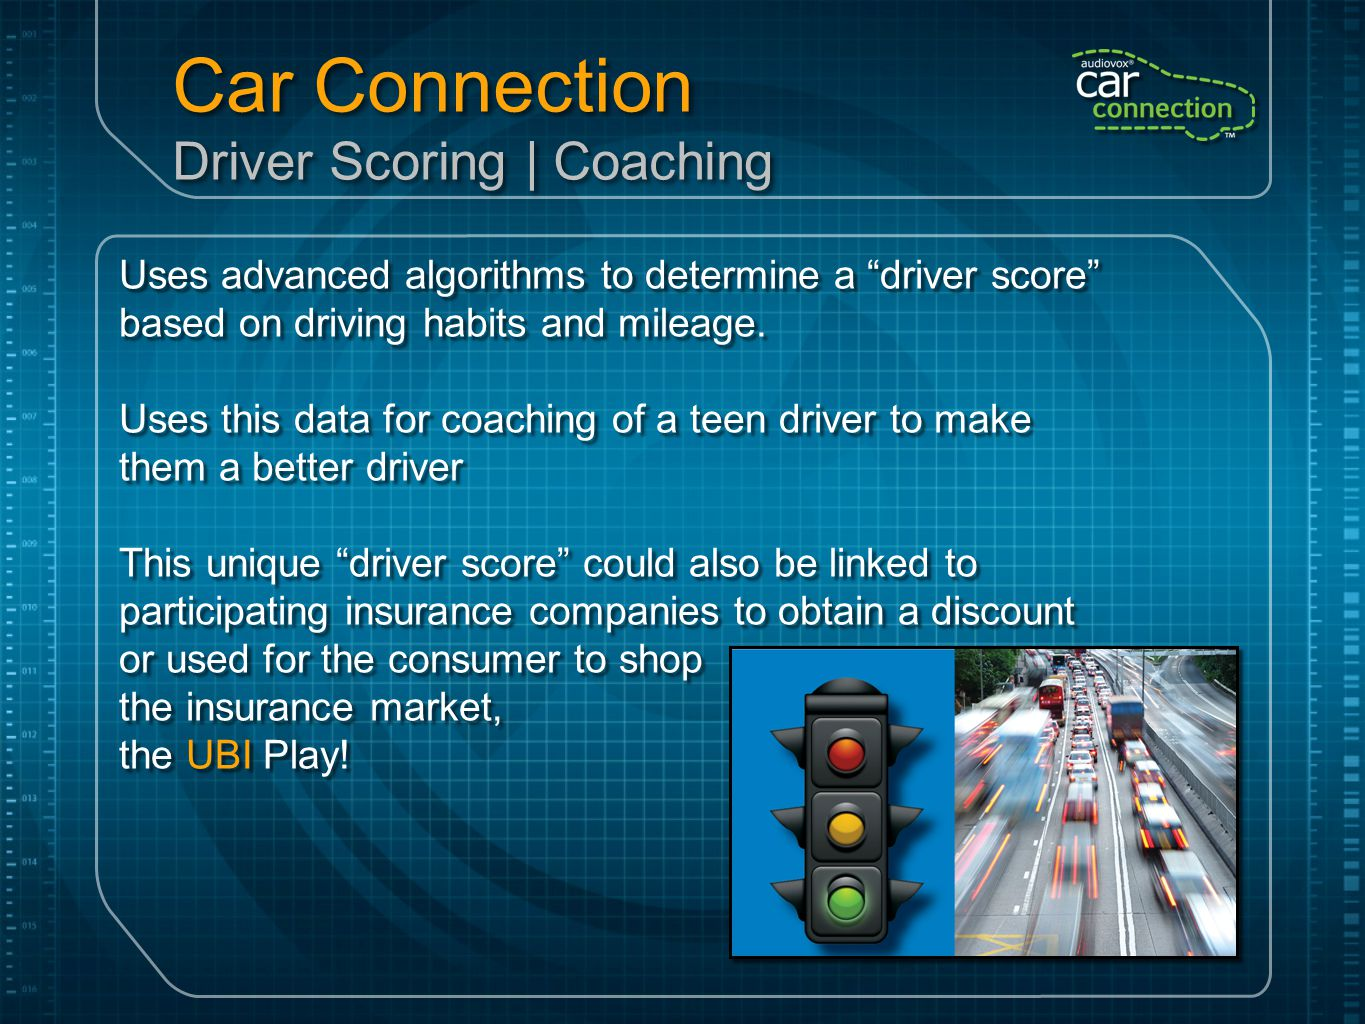 Car Connection Driver Scoring | Coaching